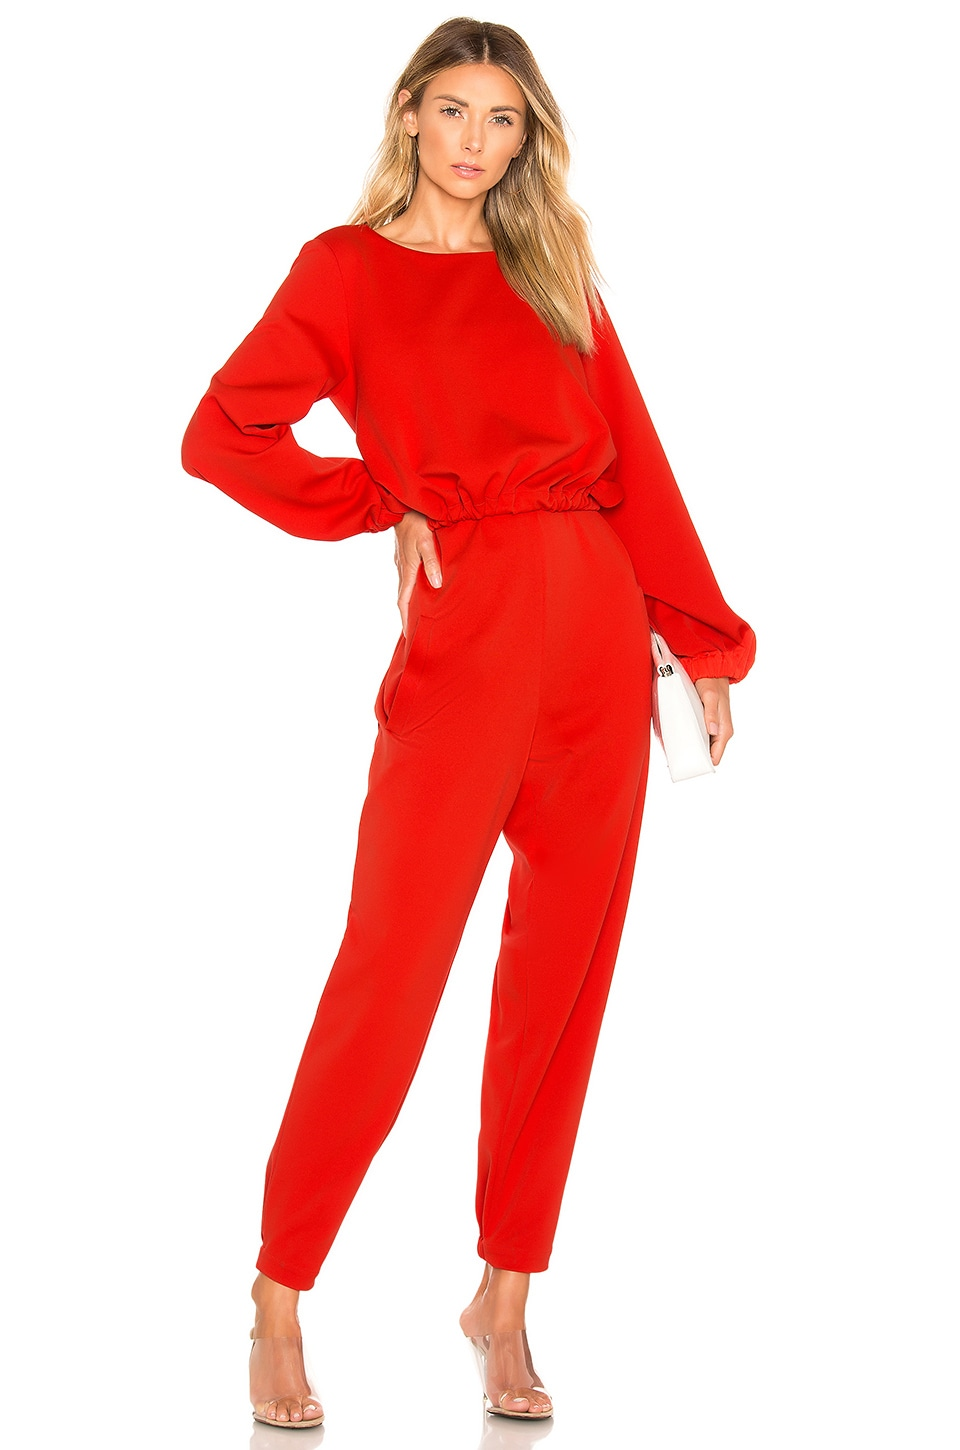 Tibi Ruched Front Tie Jumpsuit in Tomato Red